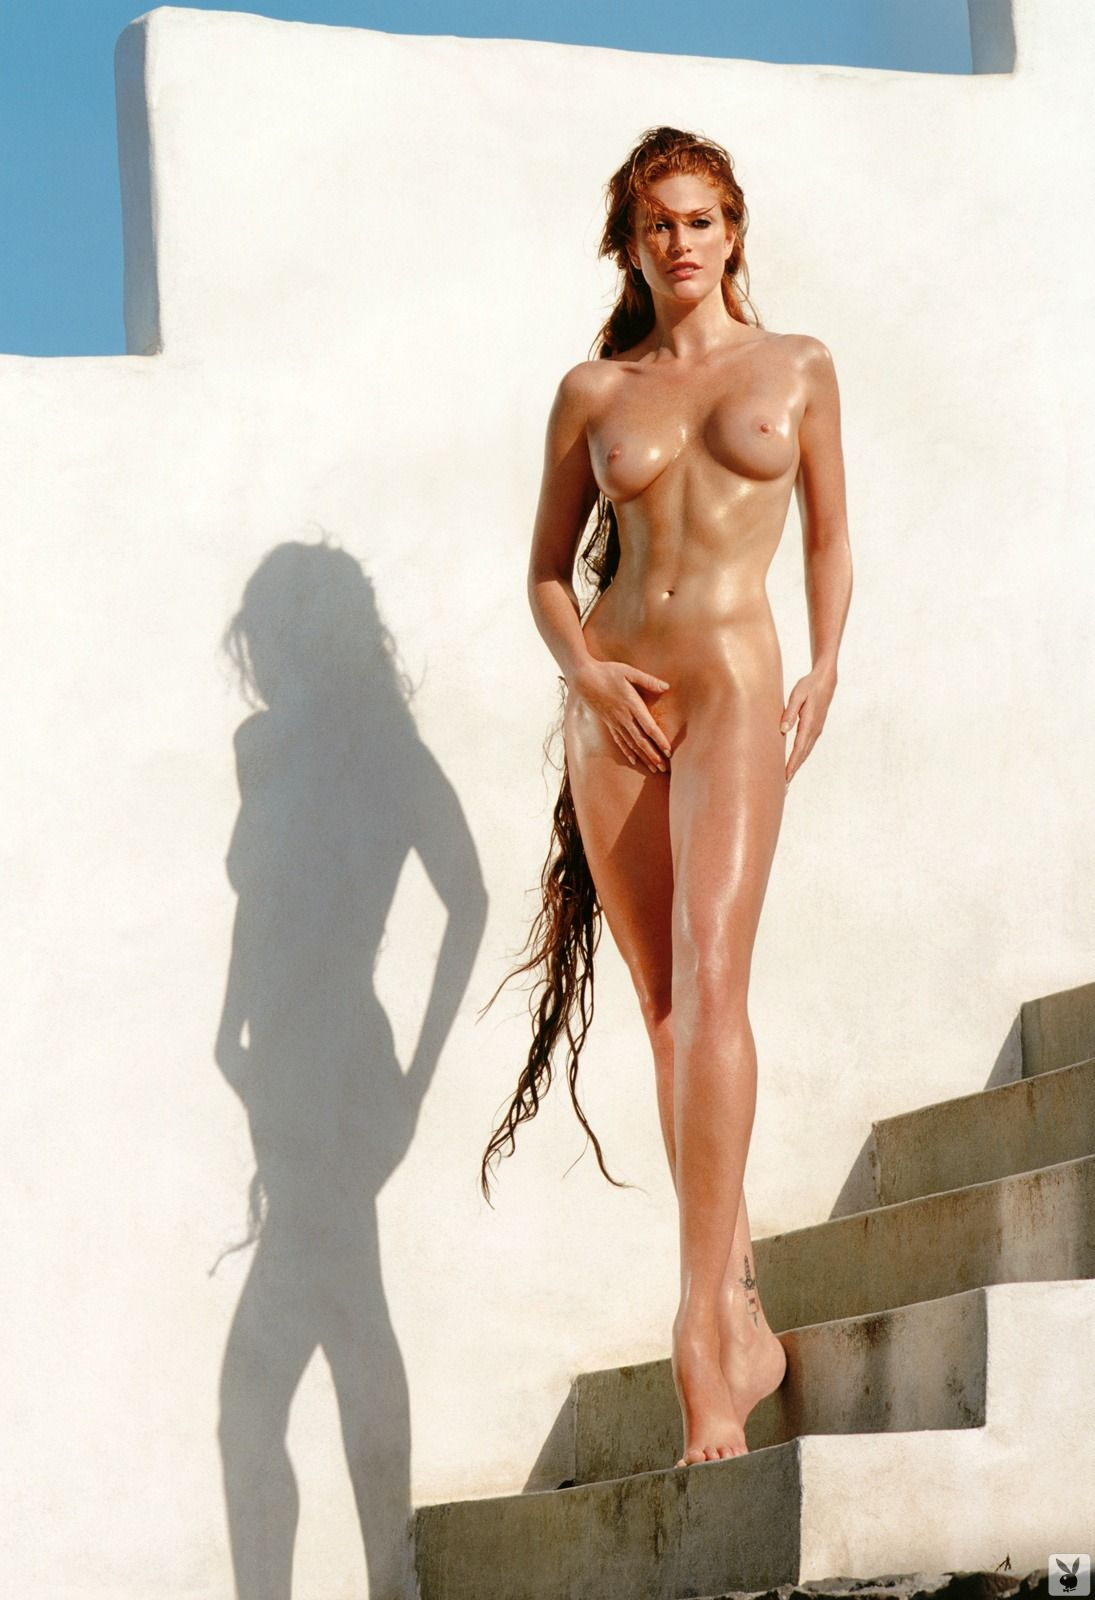 angie everhart nude playboy pictures photos and other